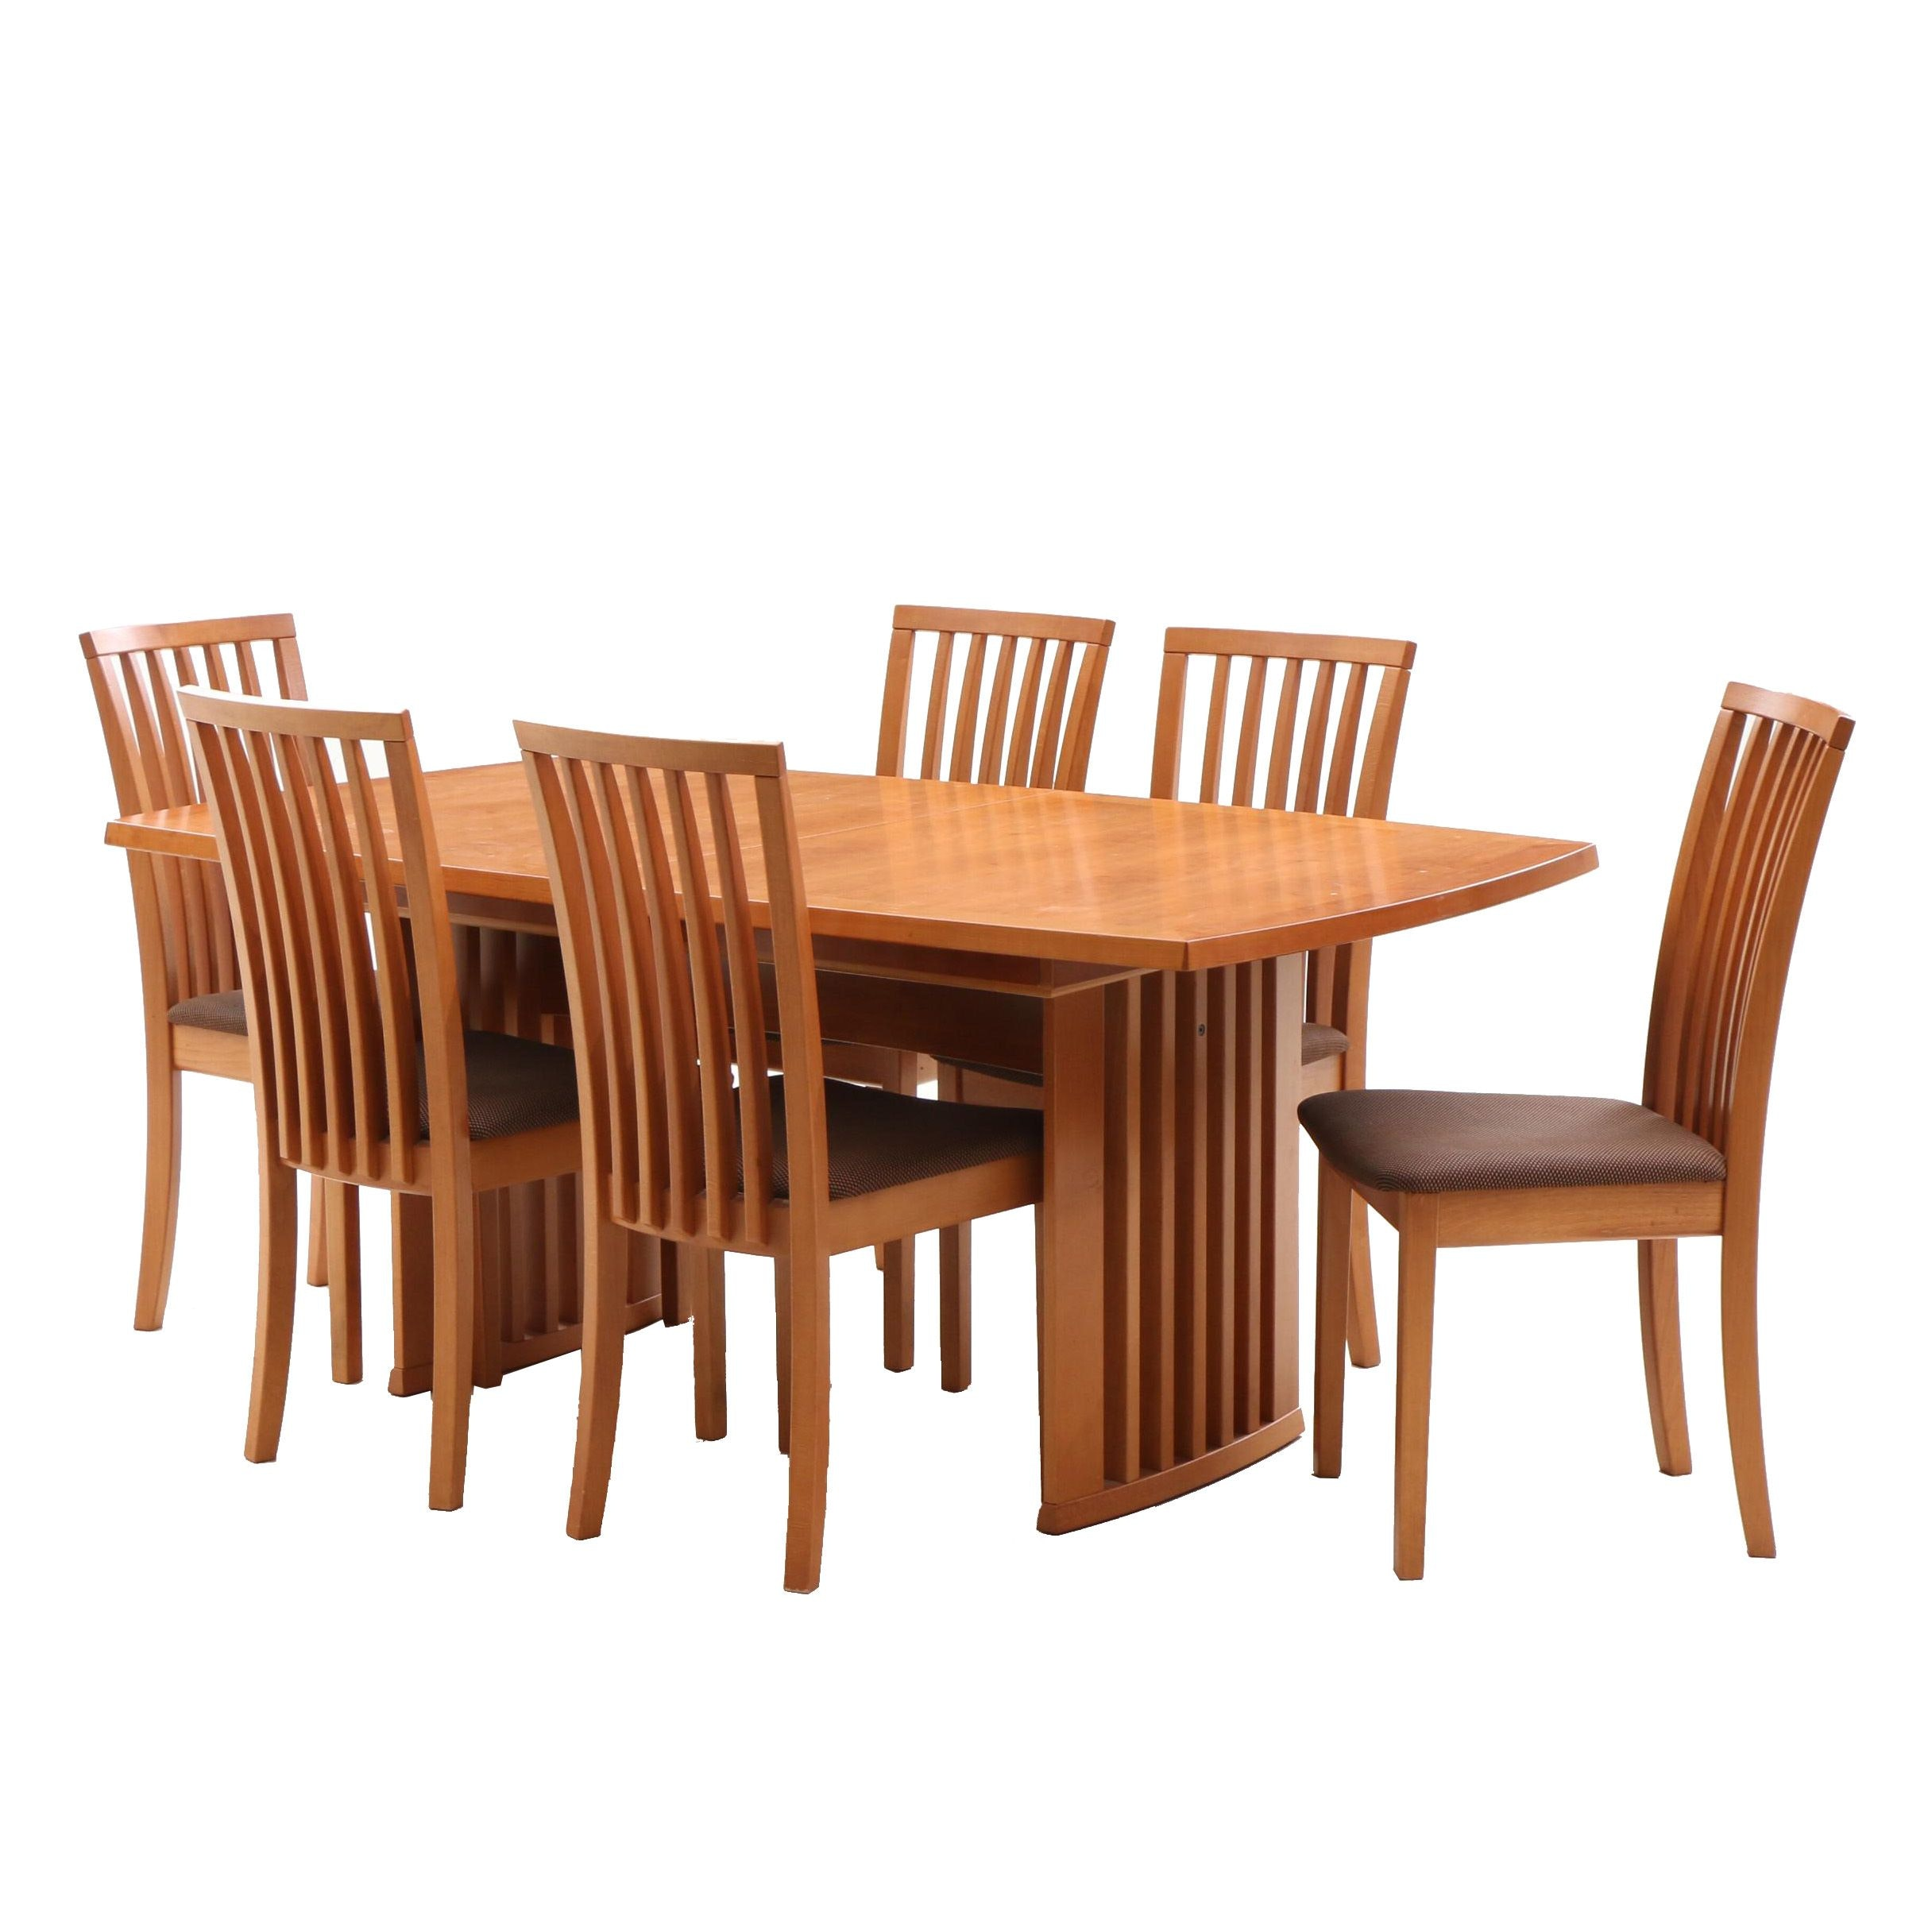 Danish Modern Maple Dining Table and Chairs by Skovby